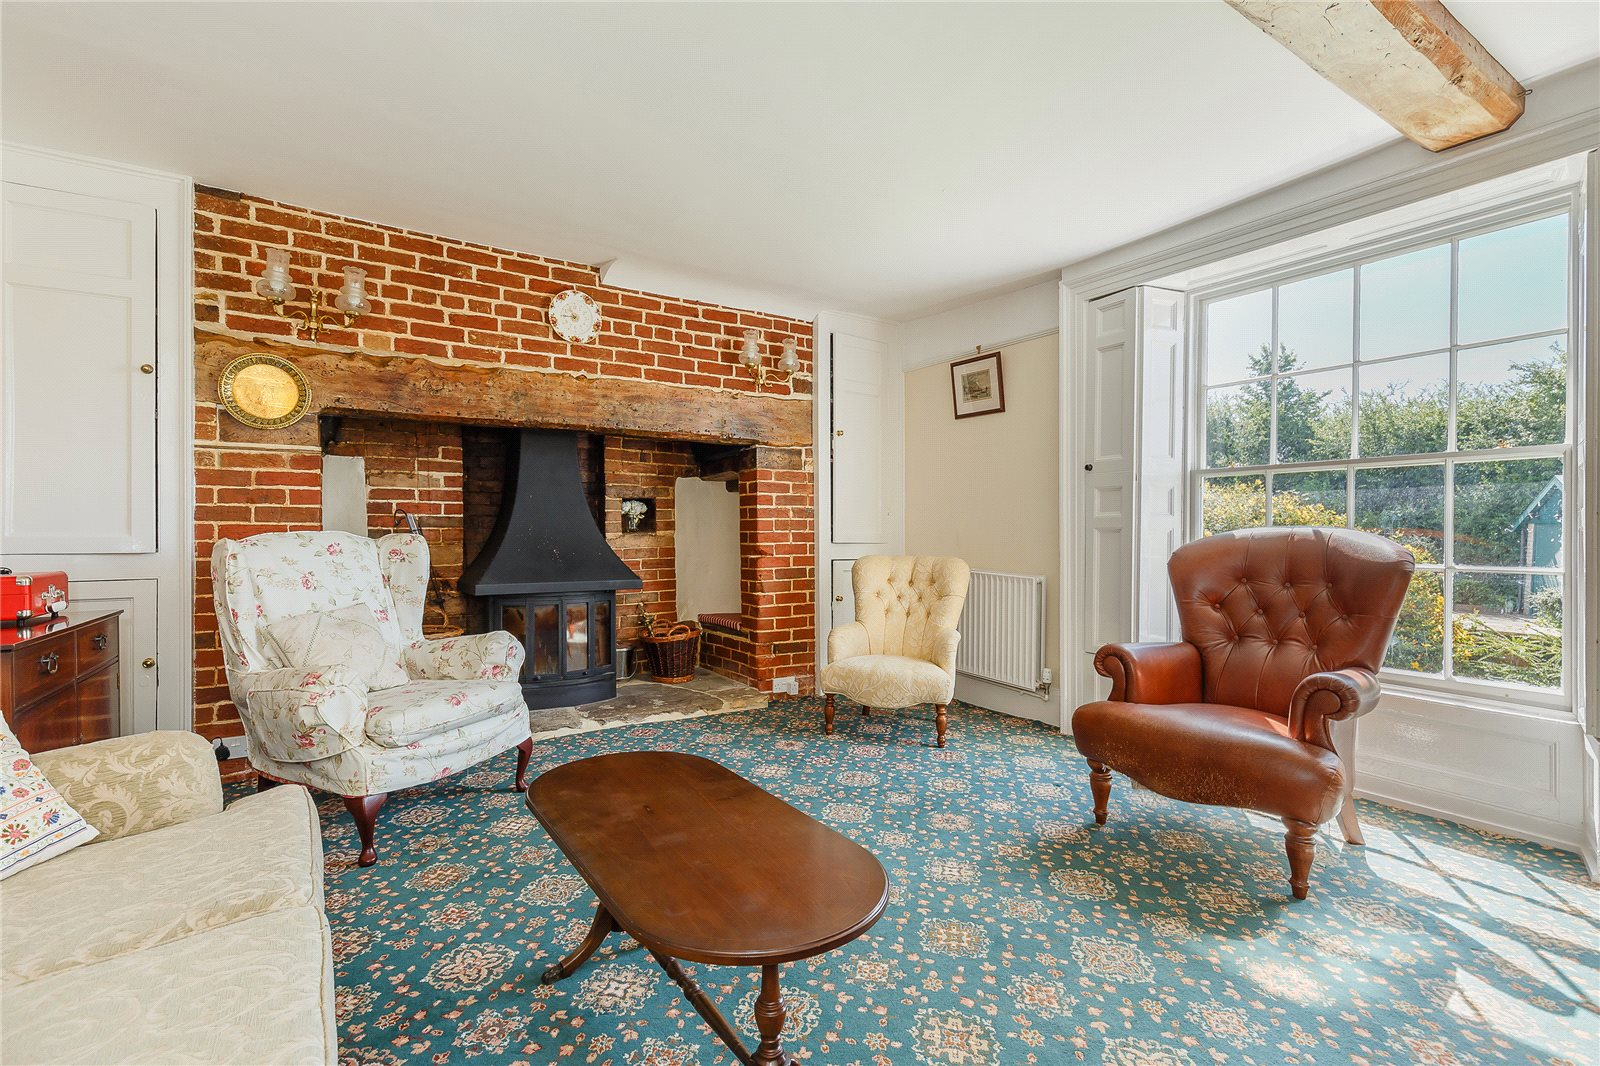 Additional photo for property listing at Purton Stoke, Swindon, Wiltshire, SN5 Swindon, イギリス